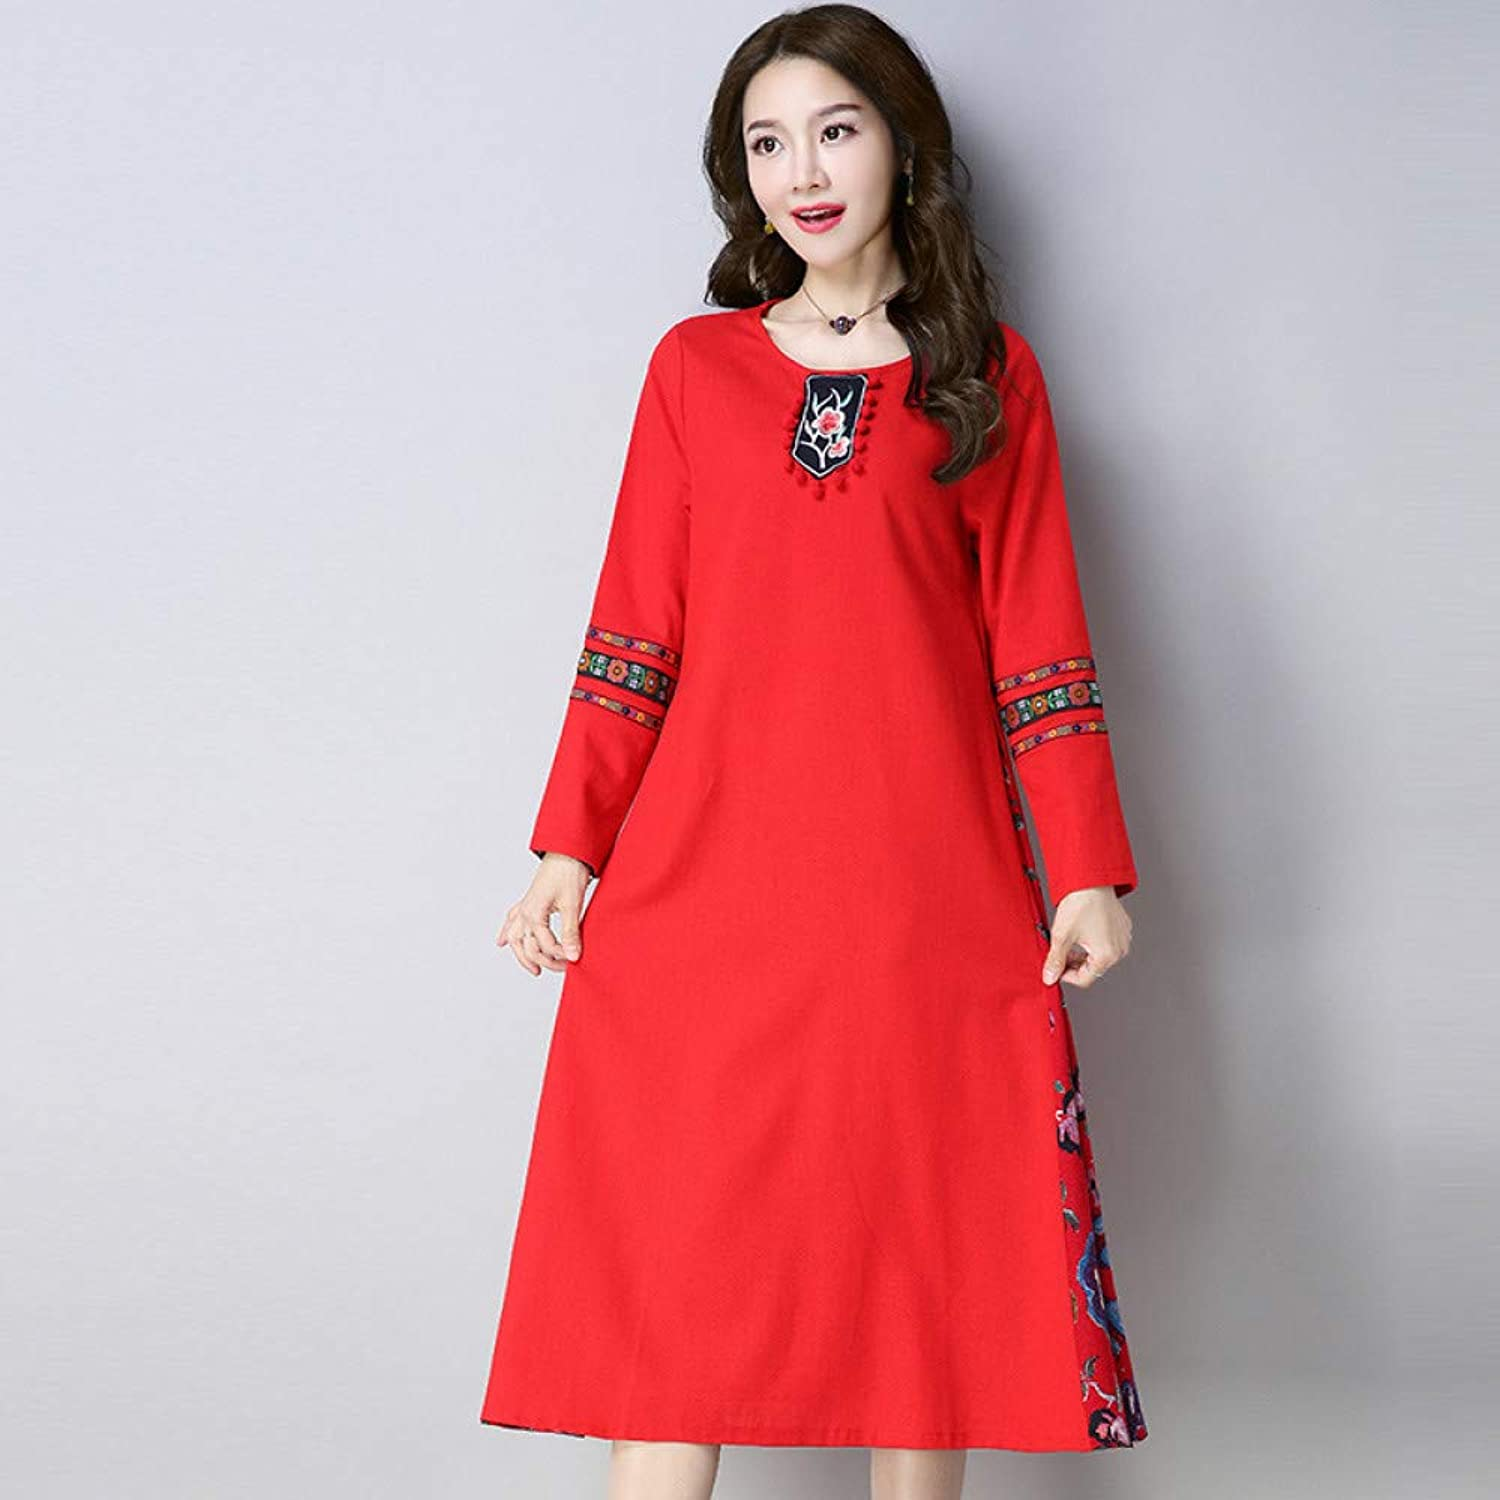 Cxlyq Dresses Embroidered Cotton and Linen Long Sleeves Large Swing Dress